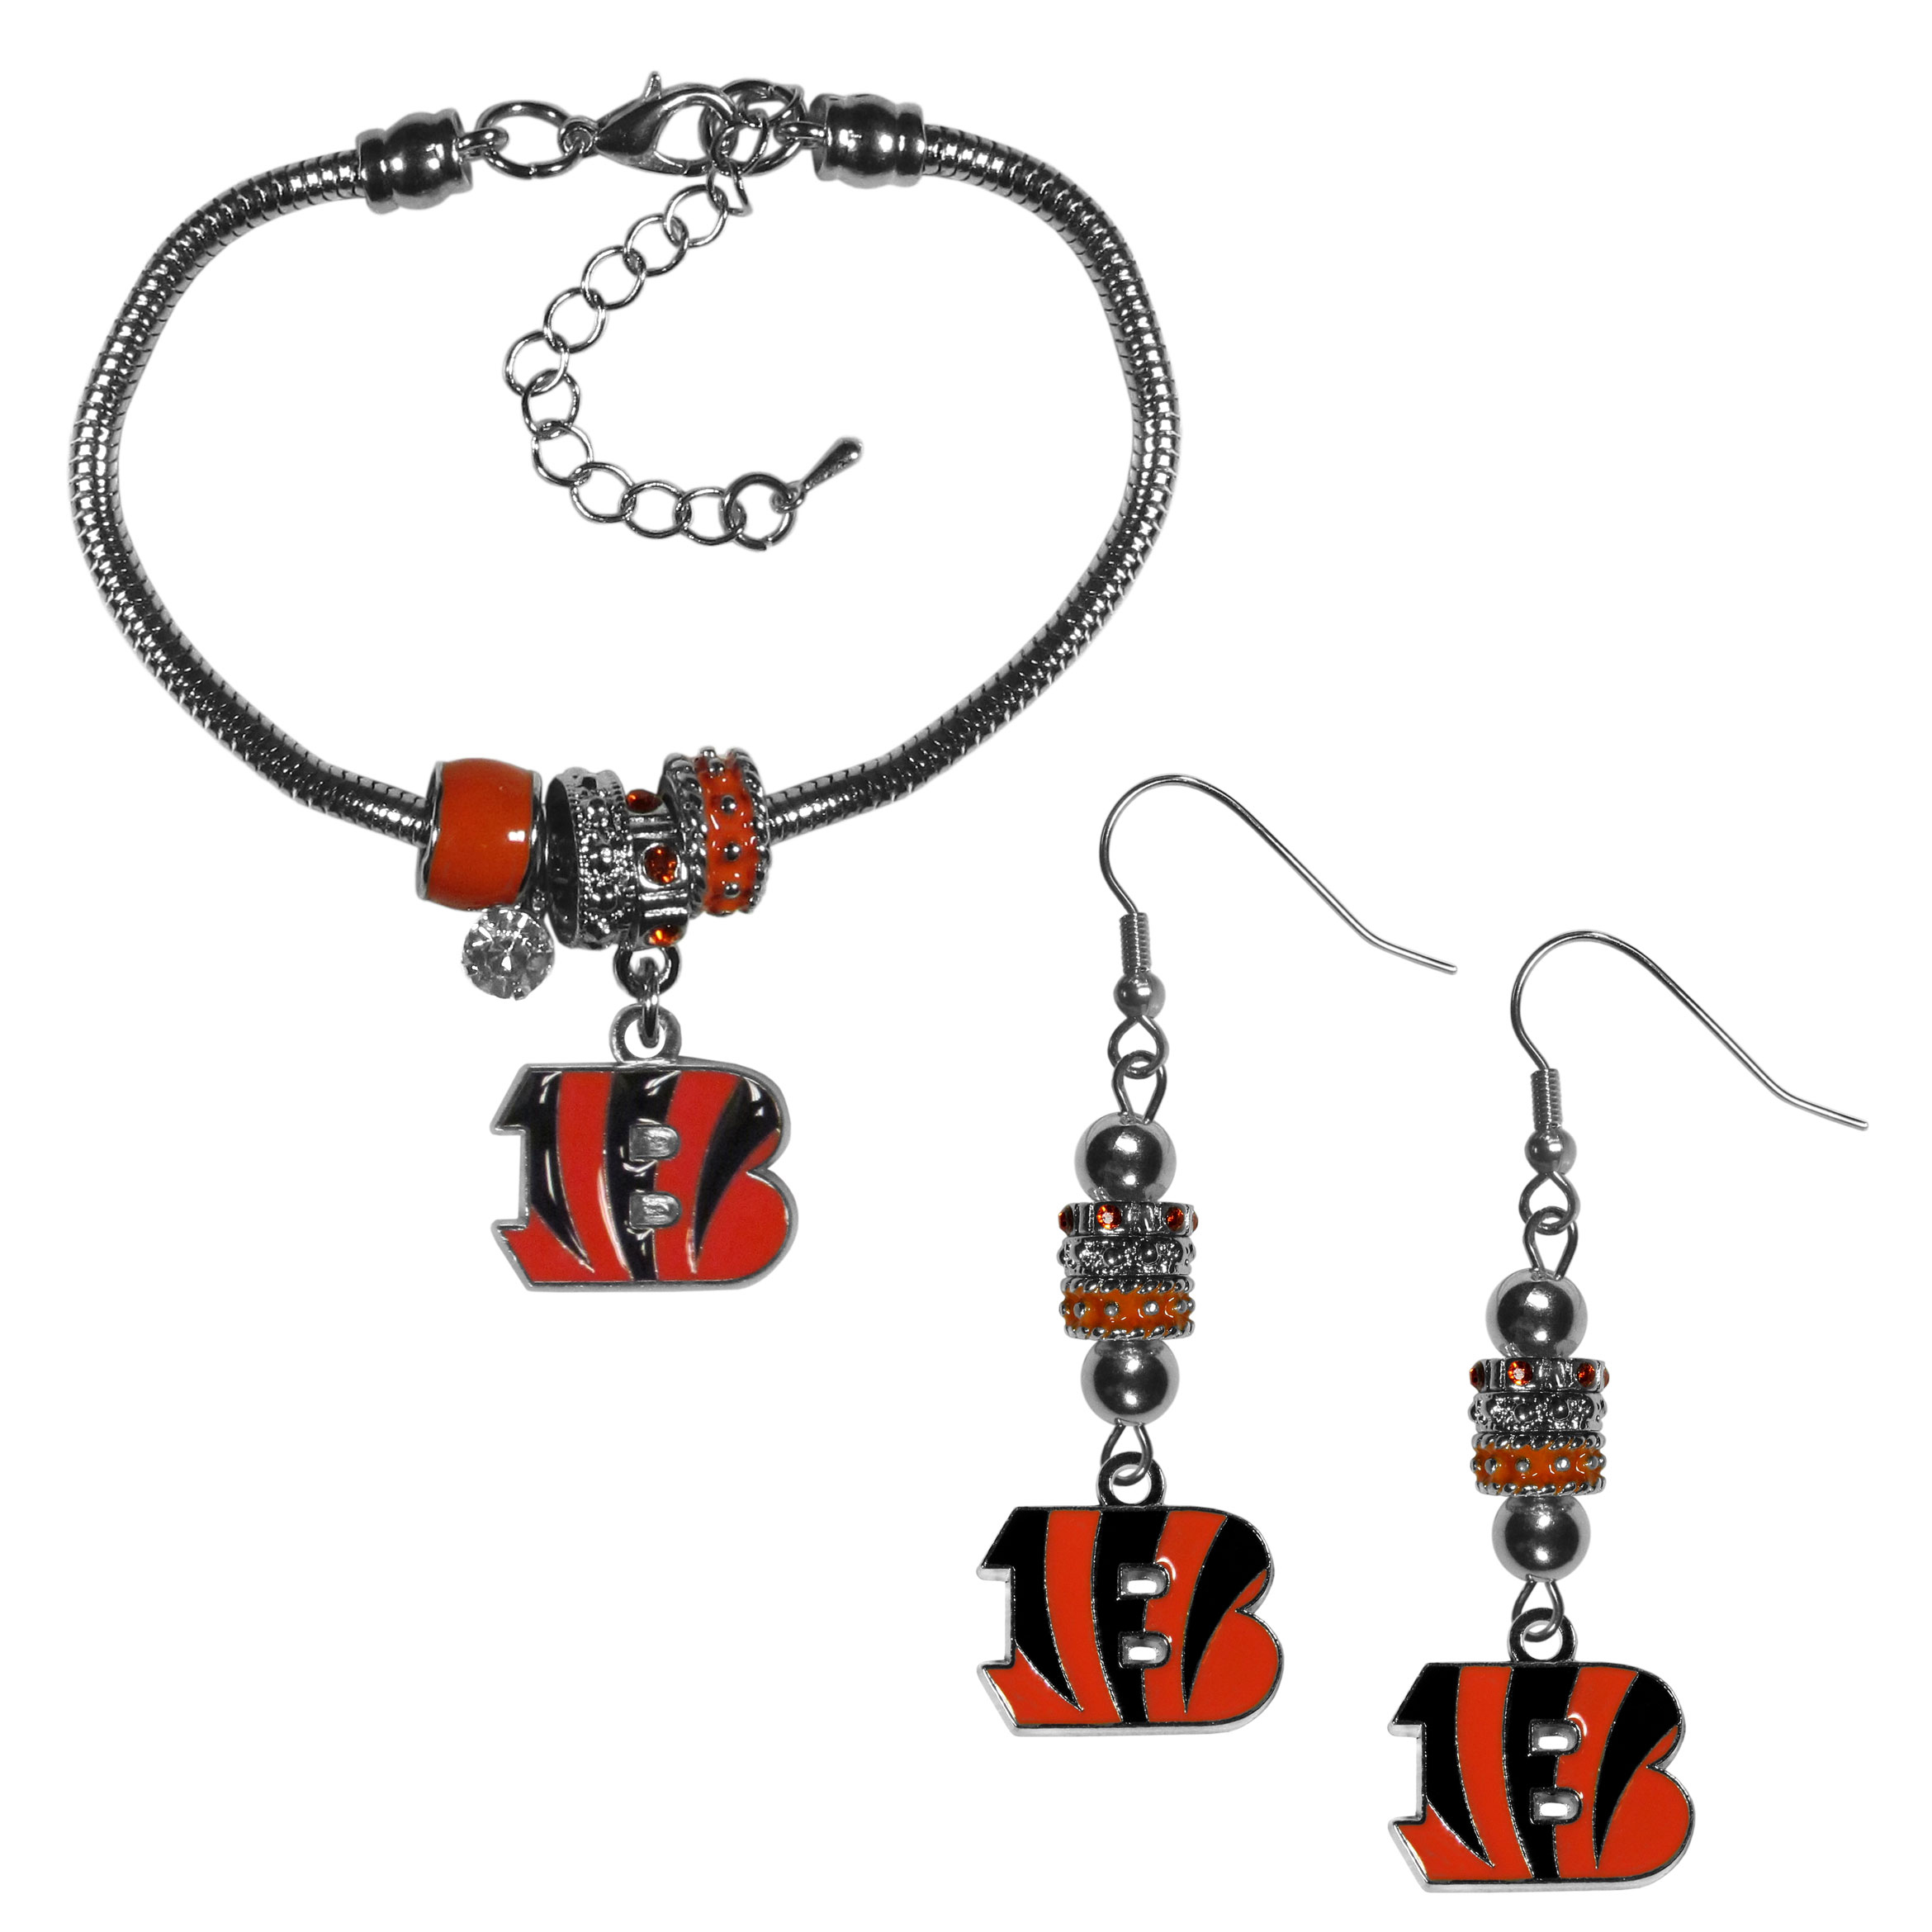 Cincinnati Bengals Euro Bead Earrings and Bracelet Set - We combine the popular Euro bead style with your love of the Cincinnati Bengals with this beautiful jewelry set that includes earrings and a matching bracelet. The stylish earrings feature hypoallergenic, nickel free fishhook posts and 3 team colored Euro beads and a metal team charm. The matching snake chain bracelet is 7.5 inches long with a 2 inch extender and 4 Euro beads with a rhinestone charm and team charm.